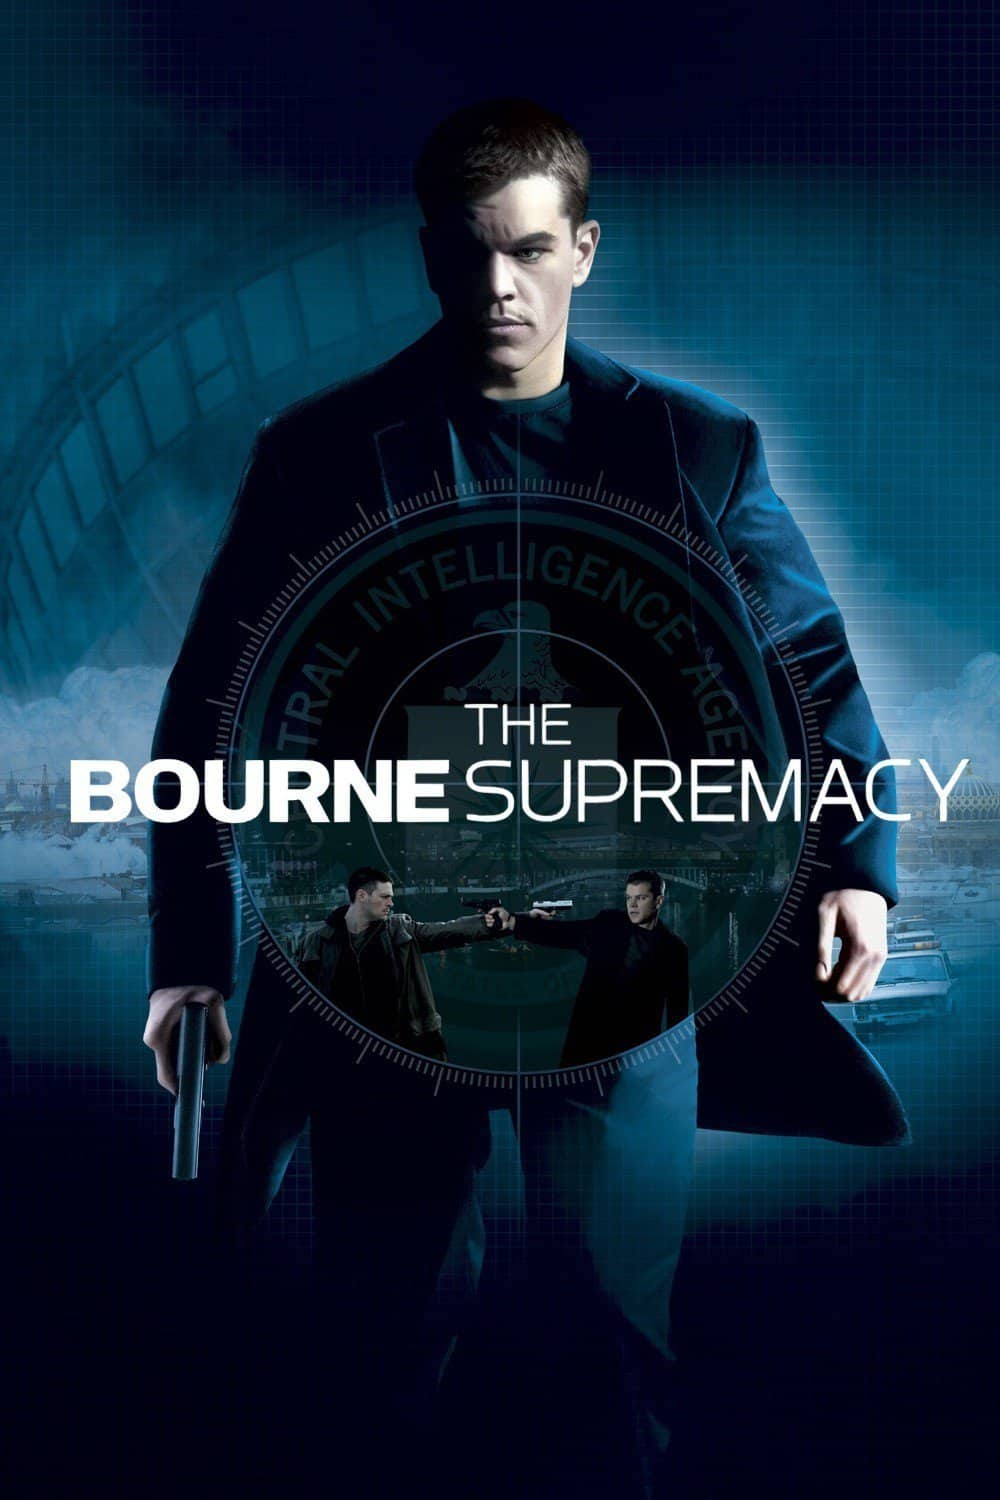 The Bourne Supremacy, 2004